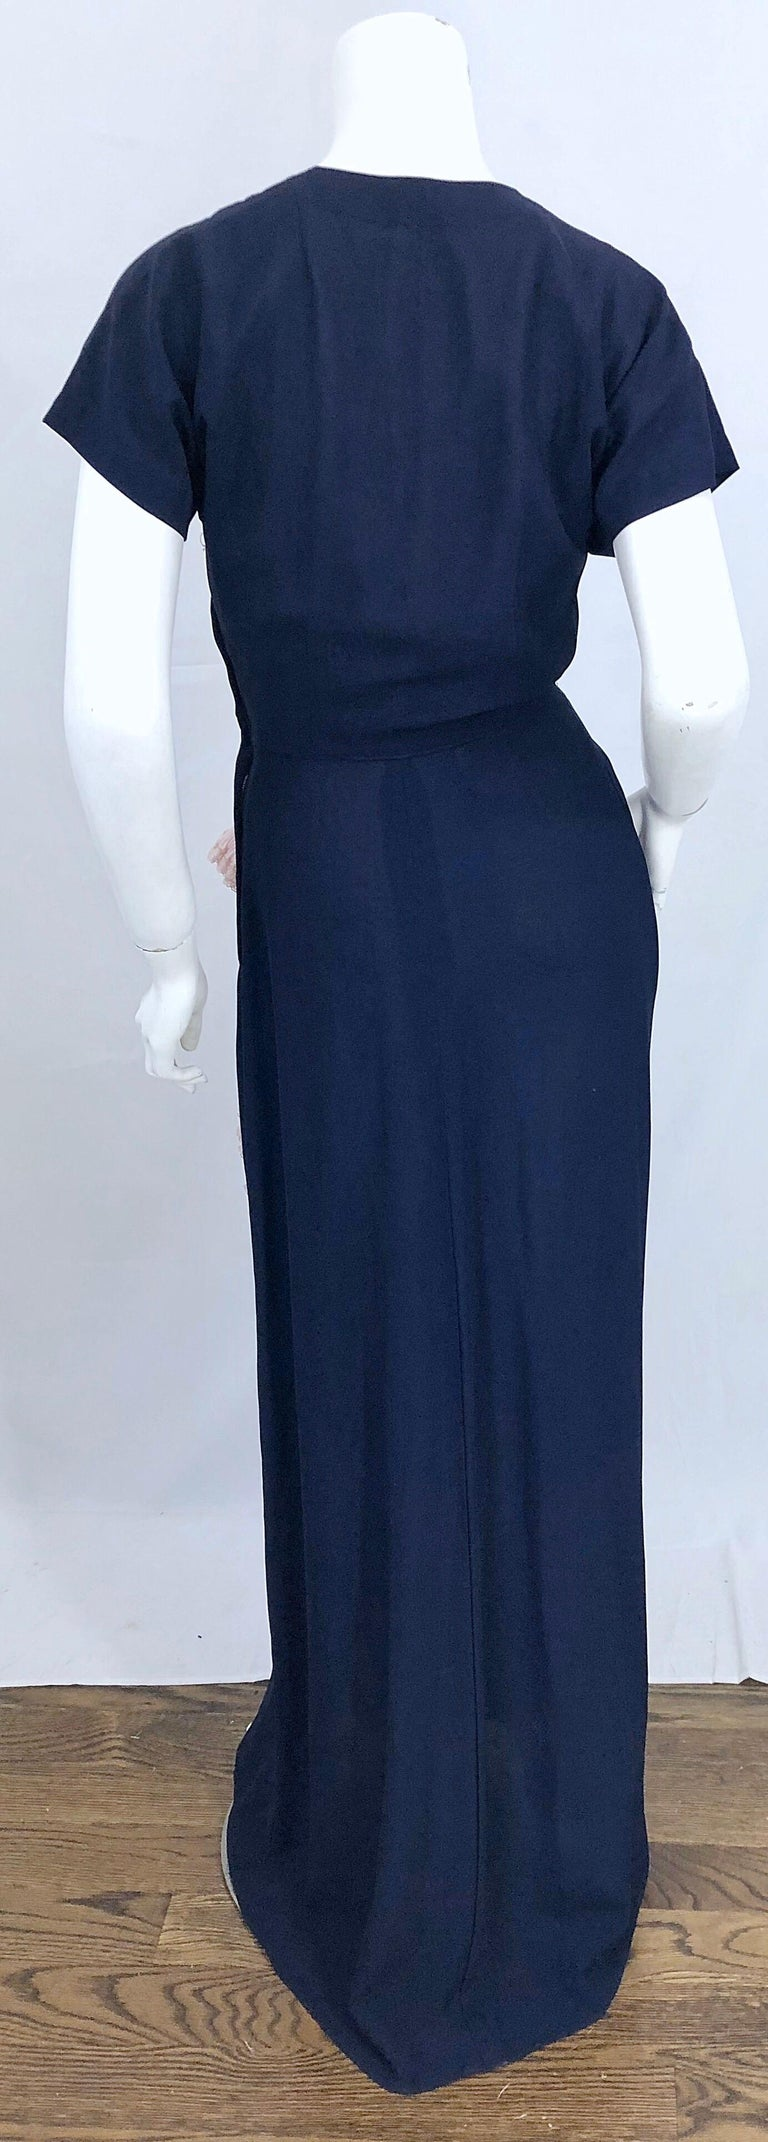 1940s Demi Couture Navy Blue + Pale Pink Short Sleeve 40s Vintage Gown / Dress For Sale 8